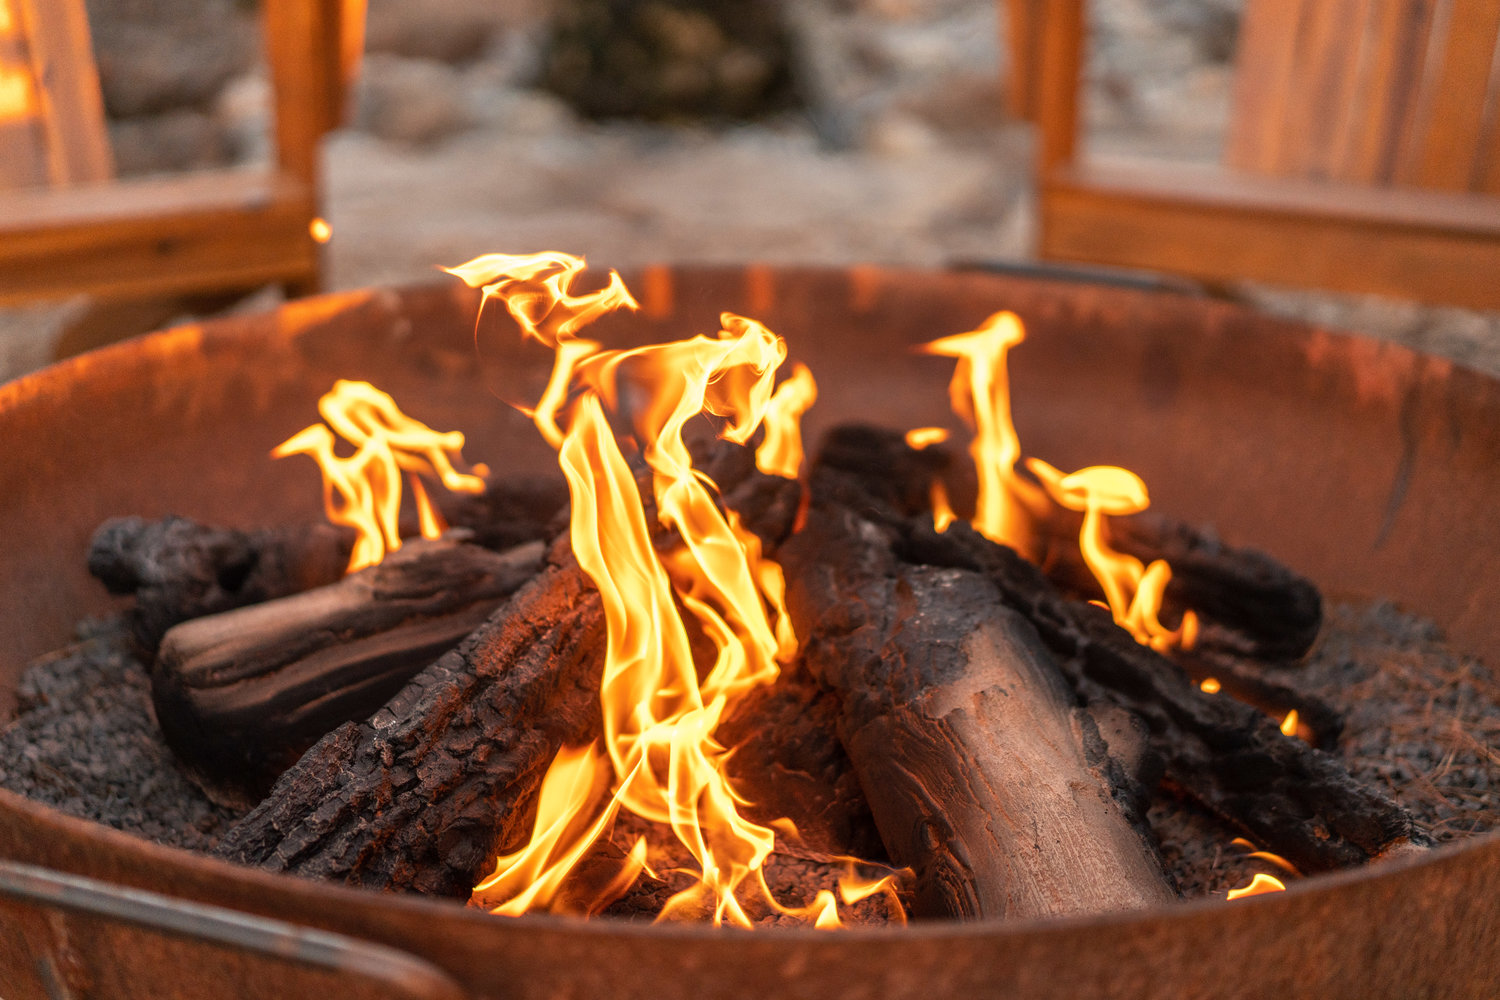 fire-pit-with-flames.jpg